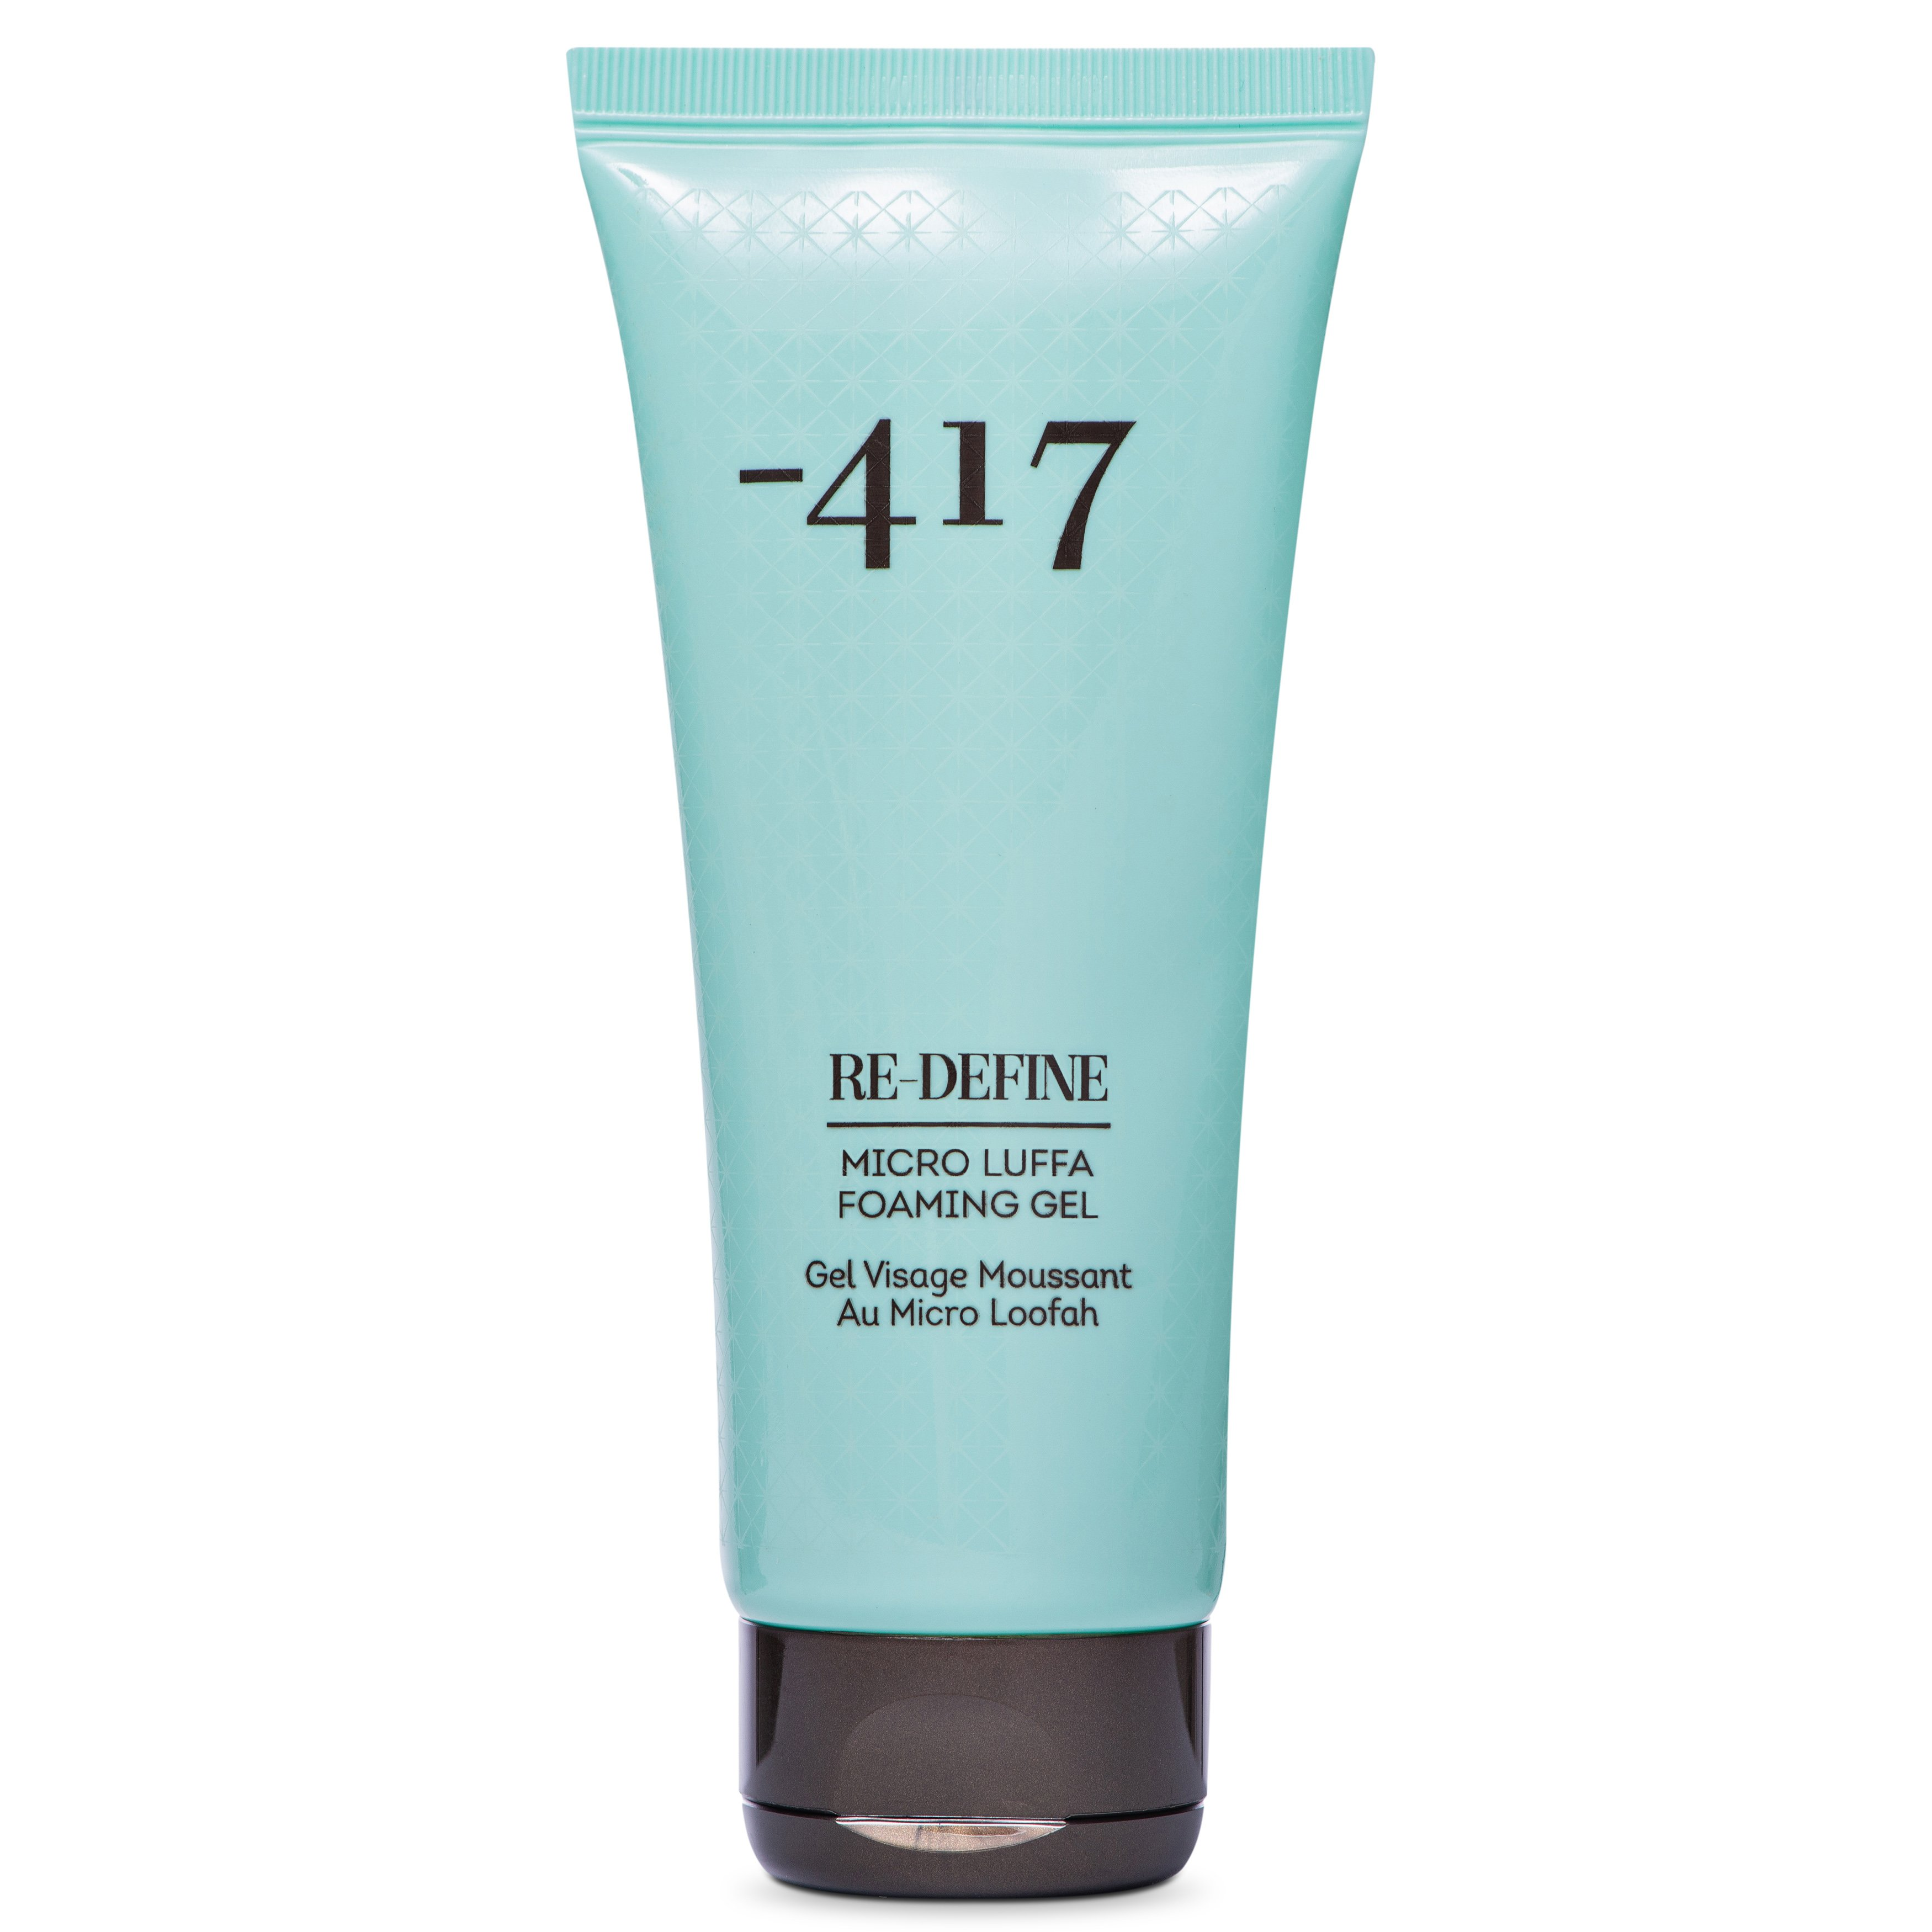 Minus 417 Re Define Micro Luffa Foaming Gel 200ml